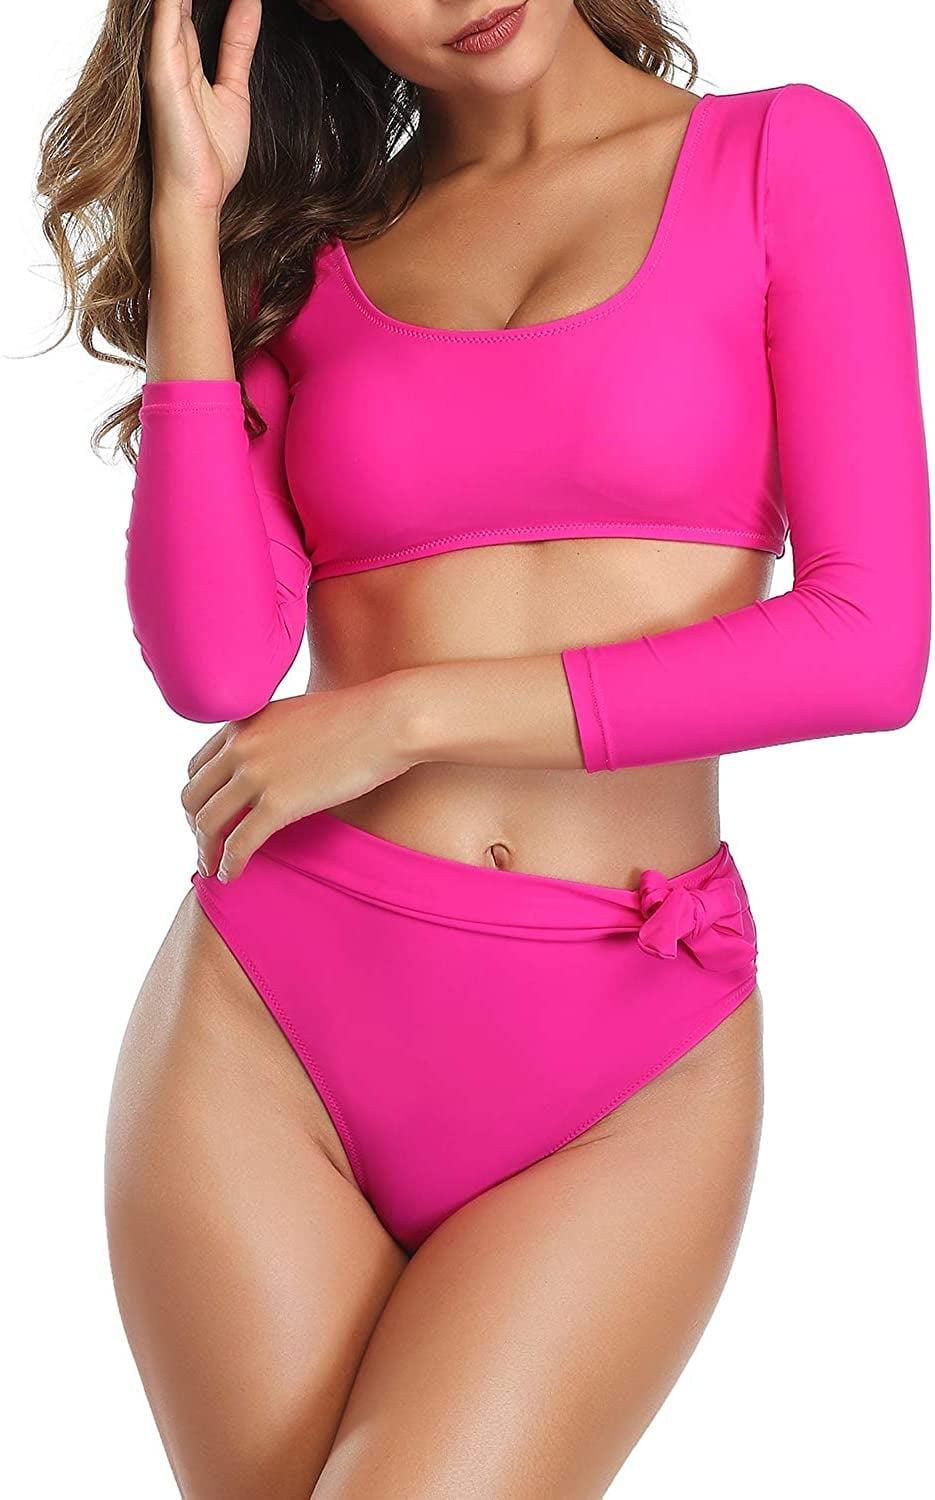 <p>Now, this <span>GirlsUpto High-Waisted Bikini Set</span> ($23 - $27) will definitely turn heads, thanks to the hot pink color and sexy silhouette.</p>